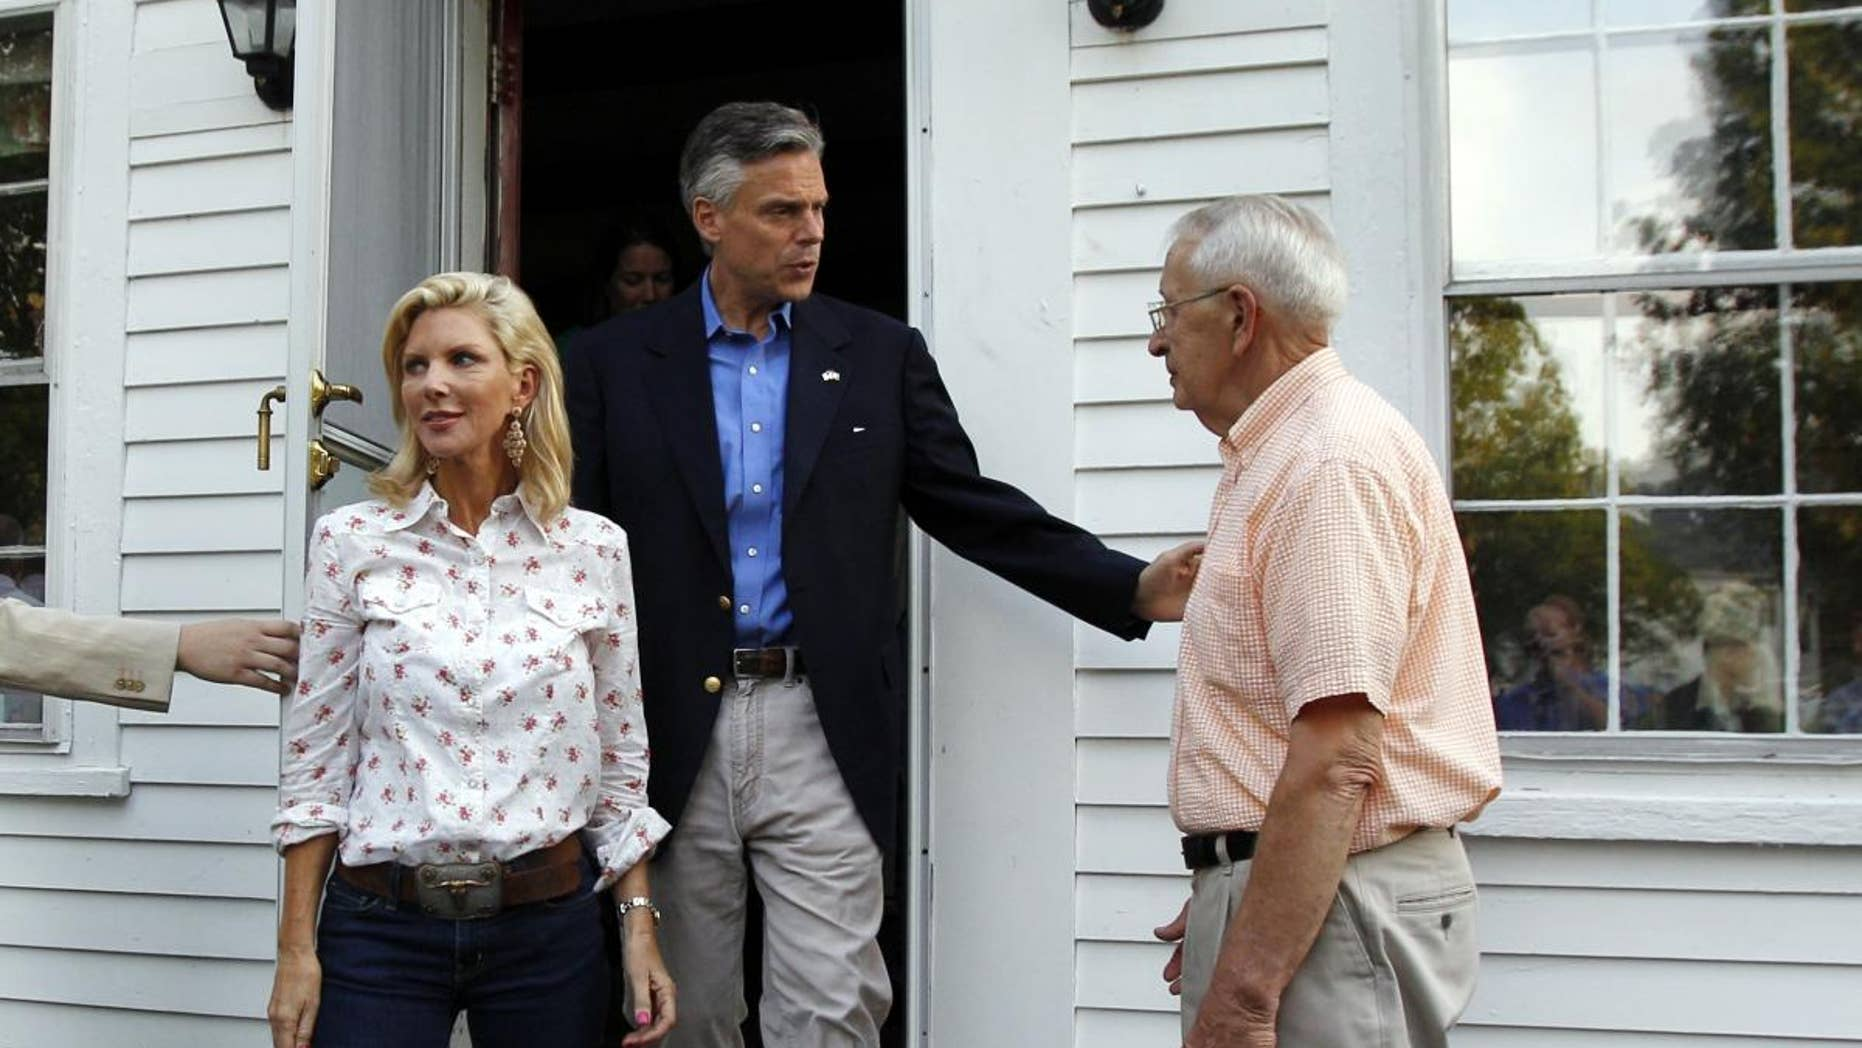 Likely 2012 presidential hopeful, former Republican Gov. Jon Huntsman, Jr., of Utah, and his wife, Mary Kaye, left, leave the home of Wally Stickney, right, after a gathering in Salem, N.H. Friday, June 10, 2011. (AP Photo/Elise Amendola)